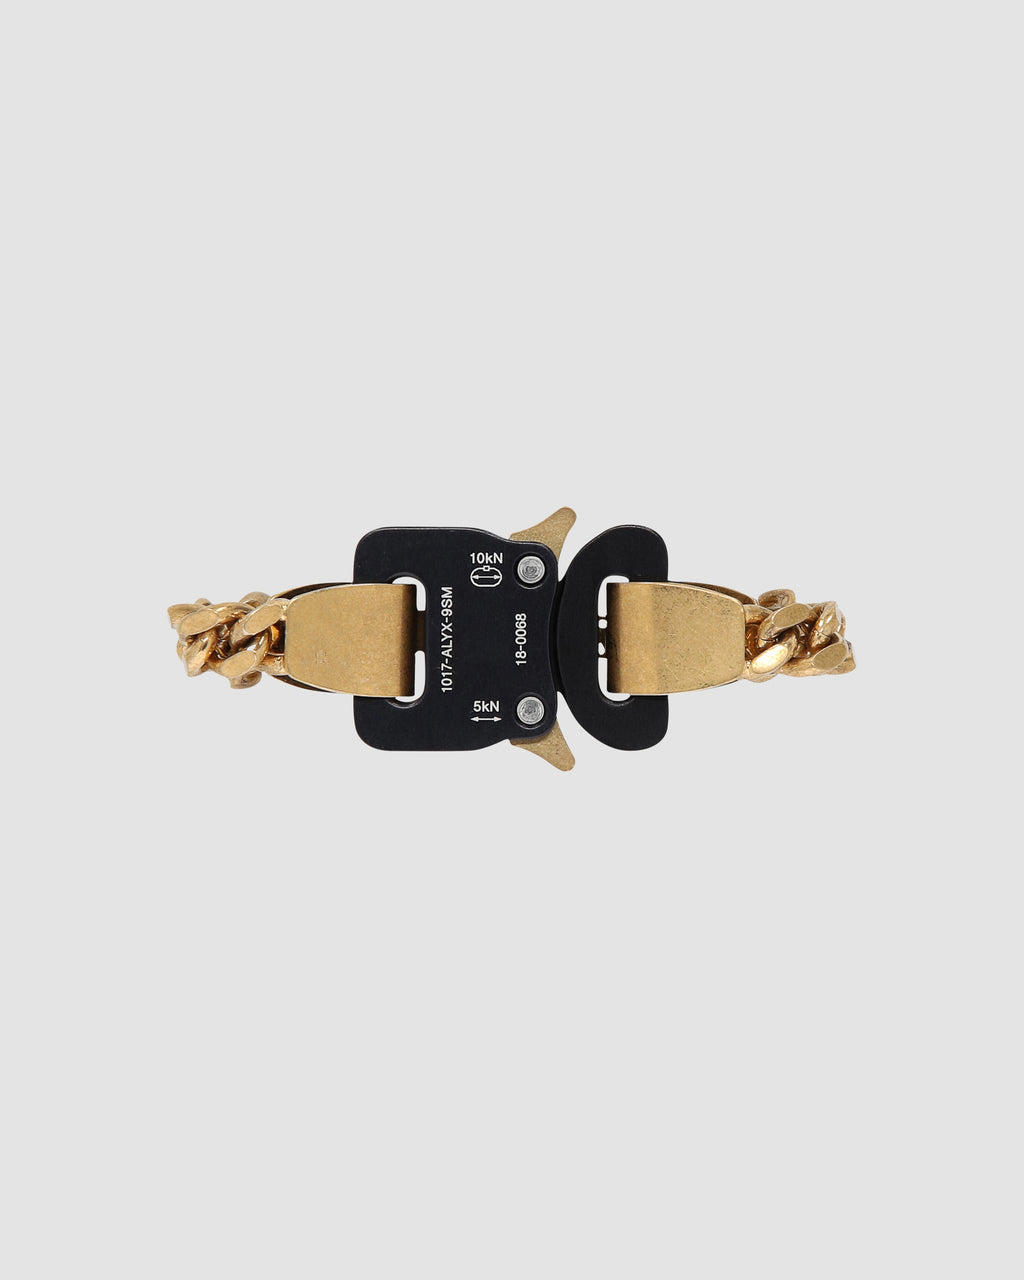 1017 ALYX 9SM | BUCKLE BRACELET | Jewellery | Accessories, GOLD, Google Shopping, JEWELLERY, jewelry, Man, S20, S20 Drop II, UNISEX, Woman